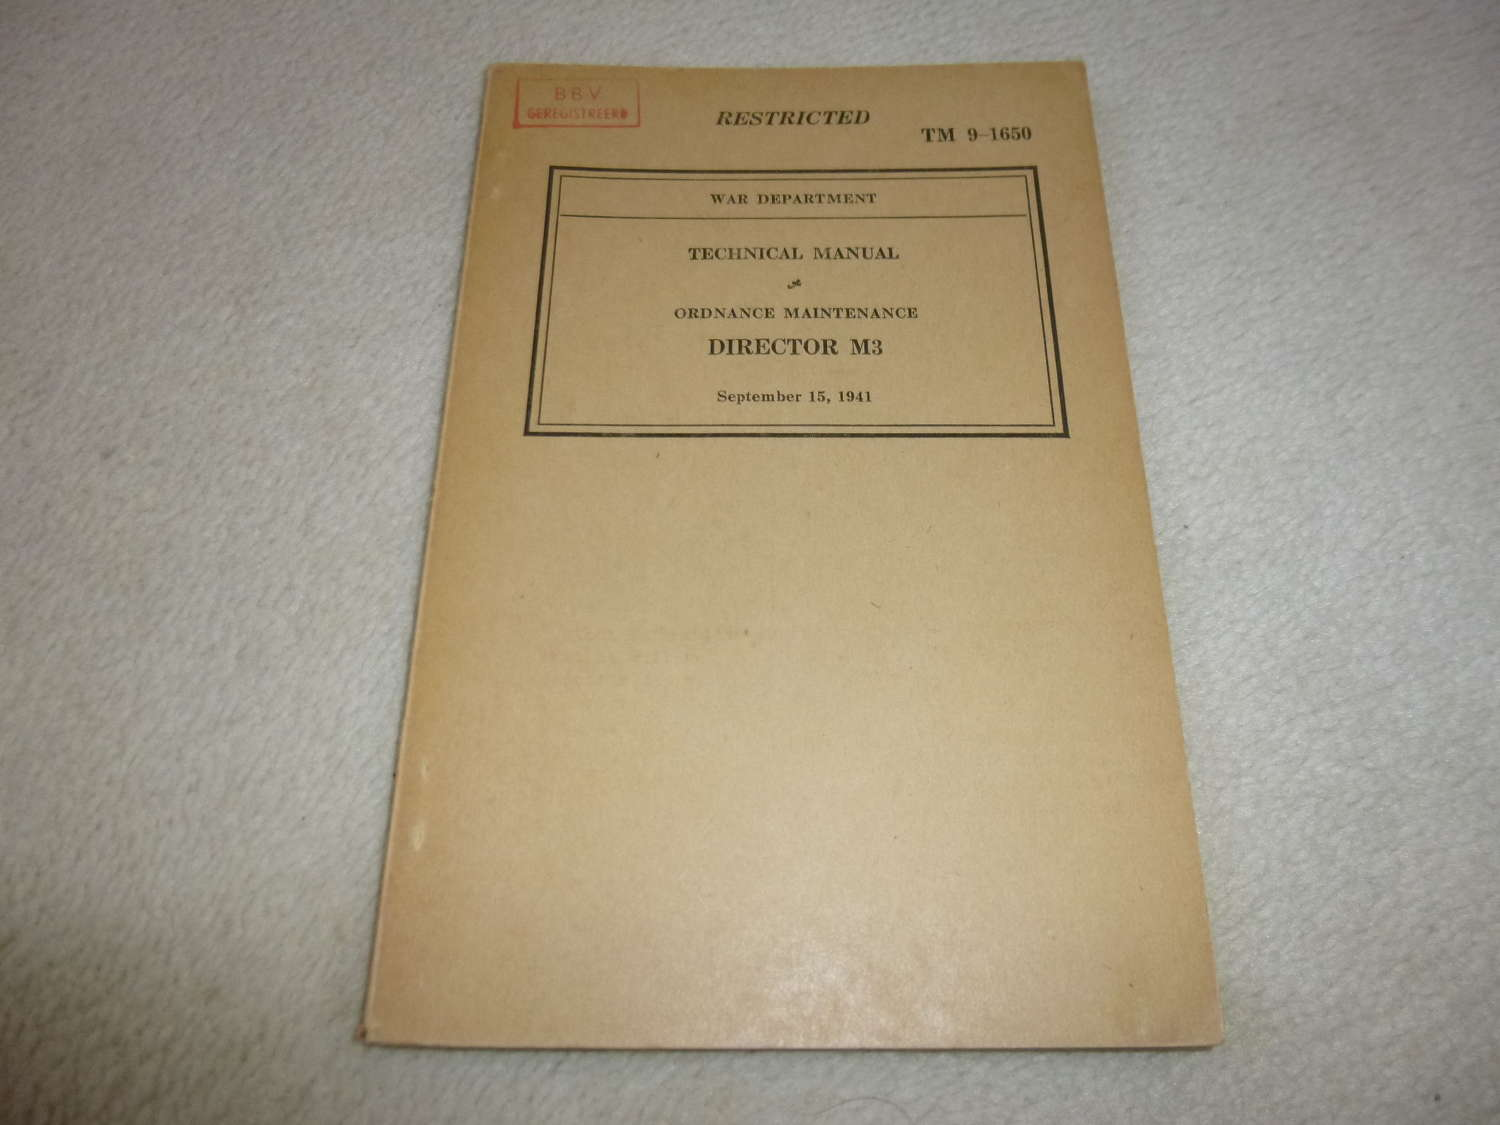 US Army TM9-1650 Maintenance Director M3 Manual